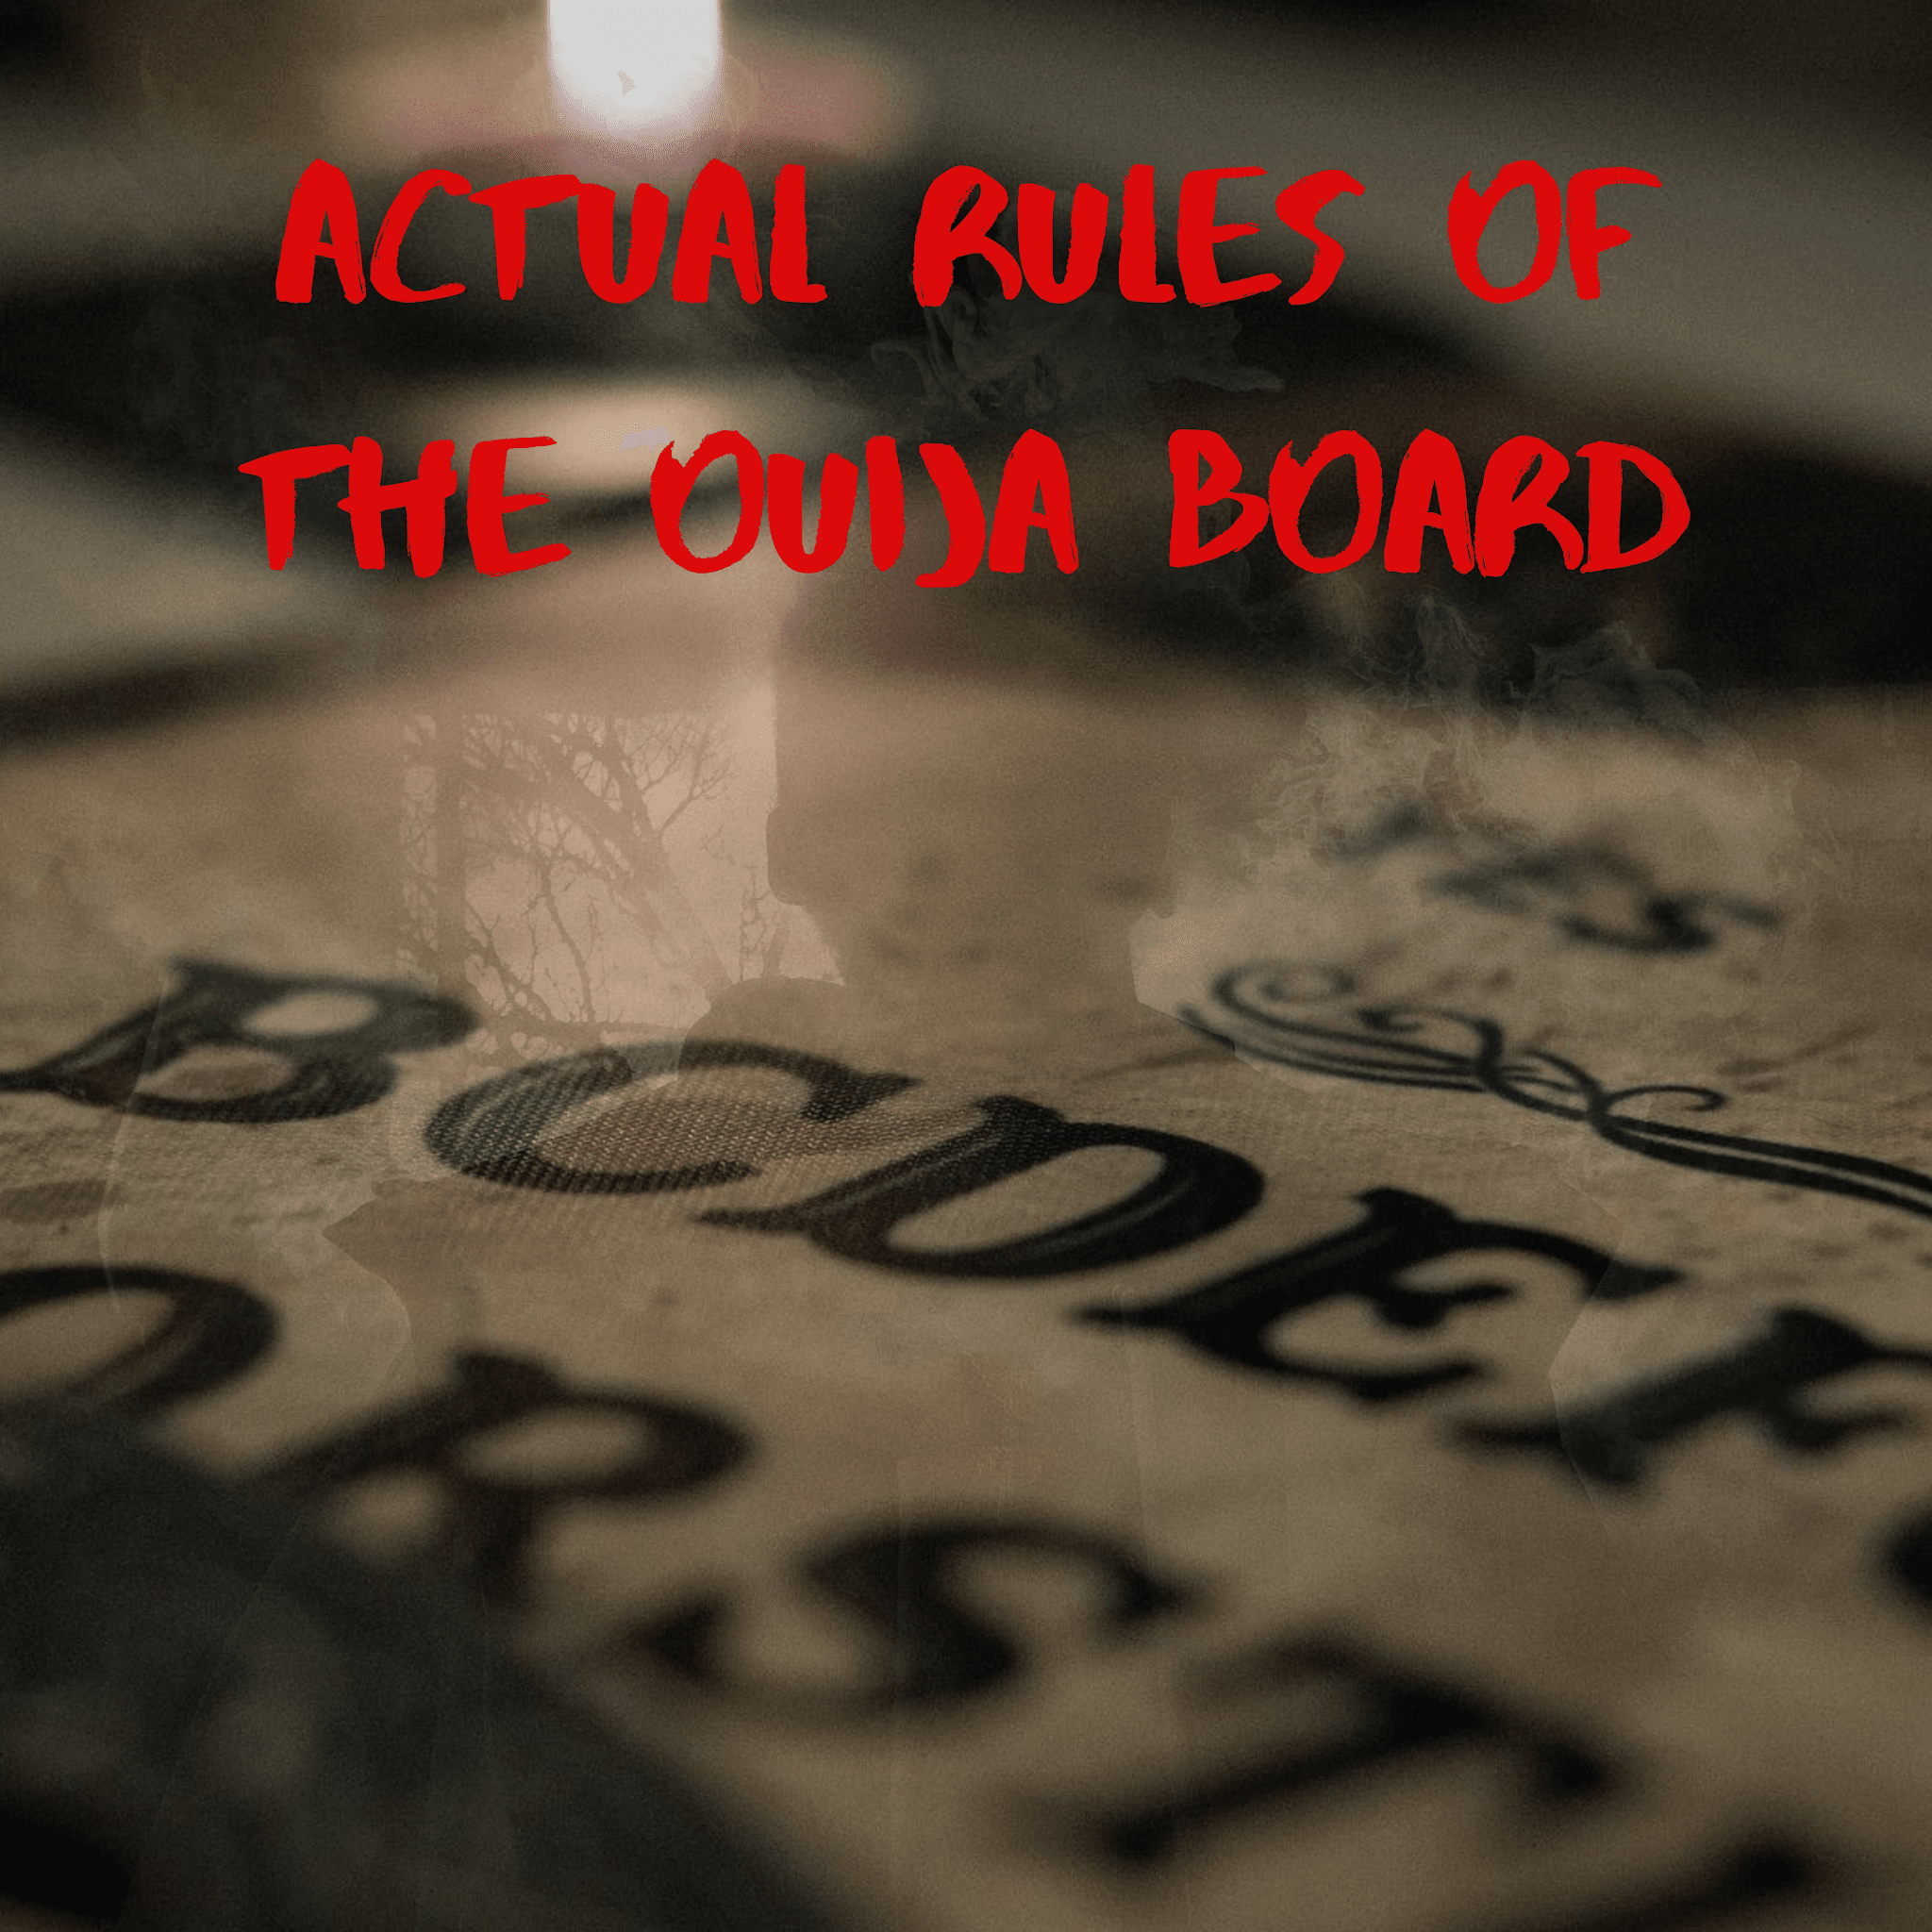 Rules of the ouija board